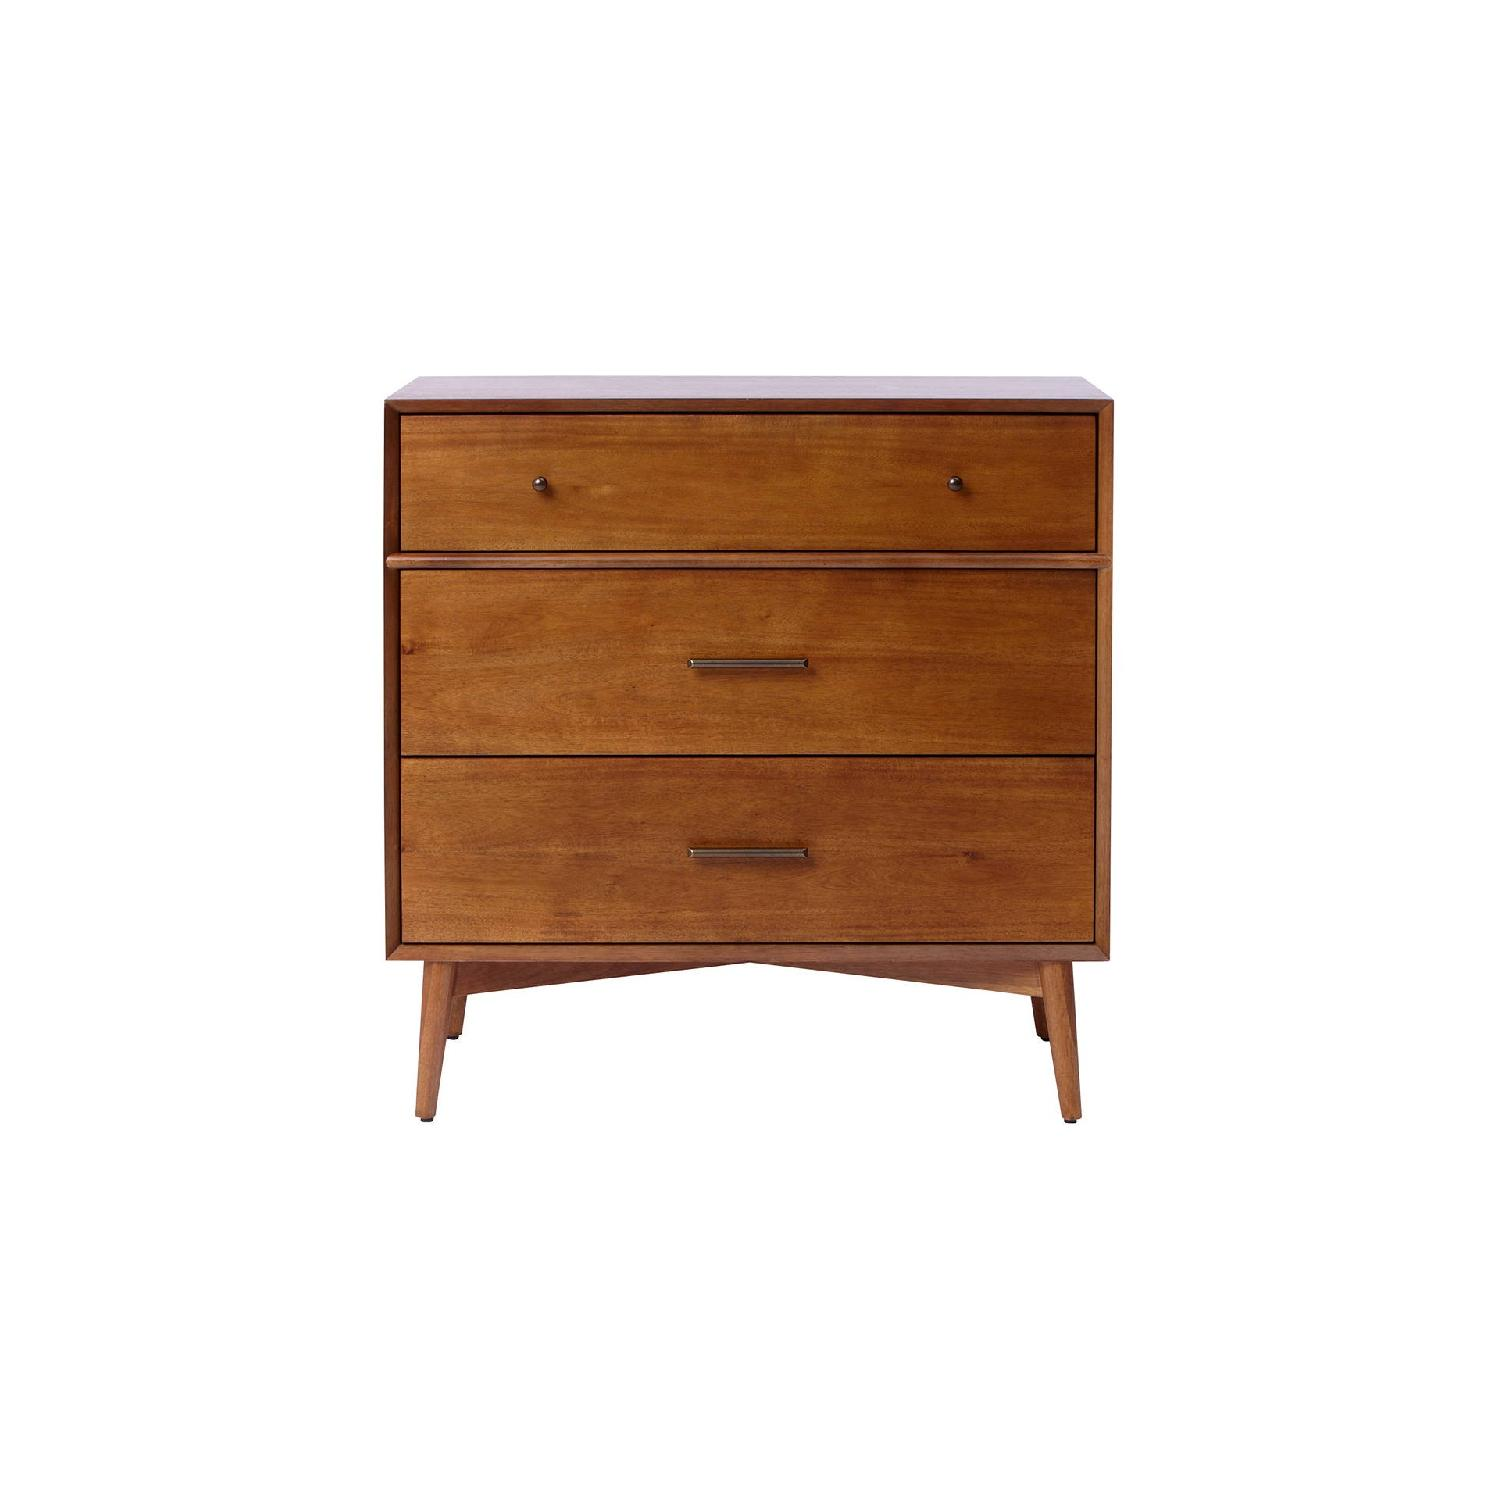 West Elm Mid-Century 3-Drawer Dresser